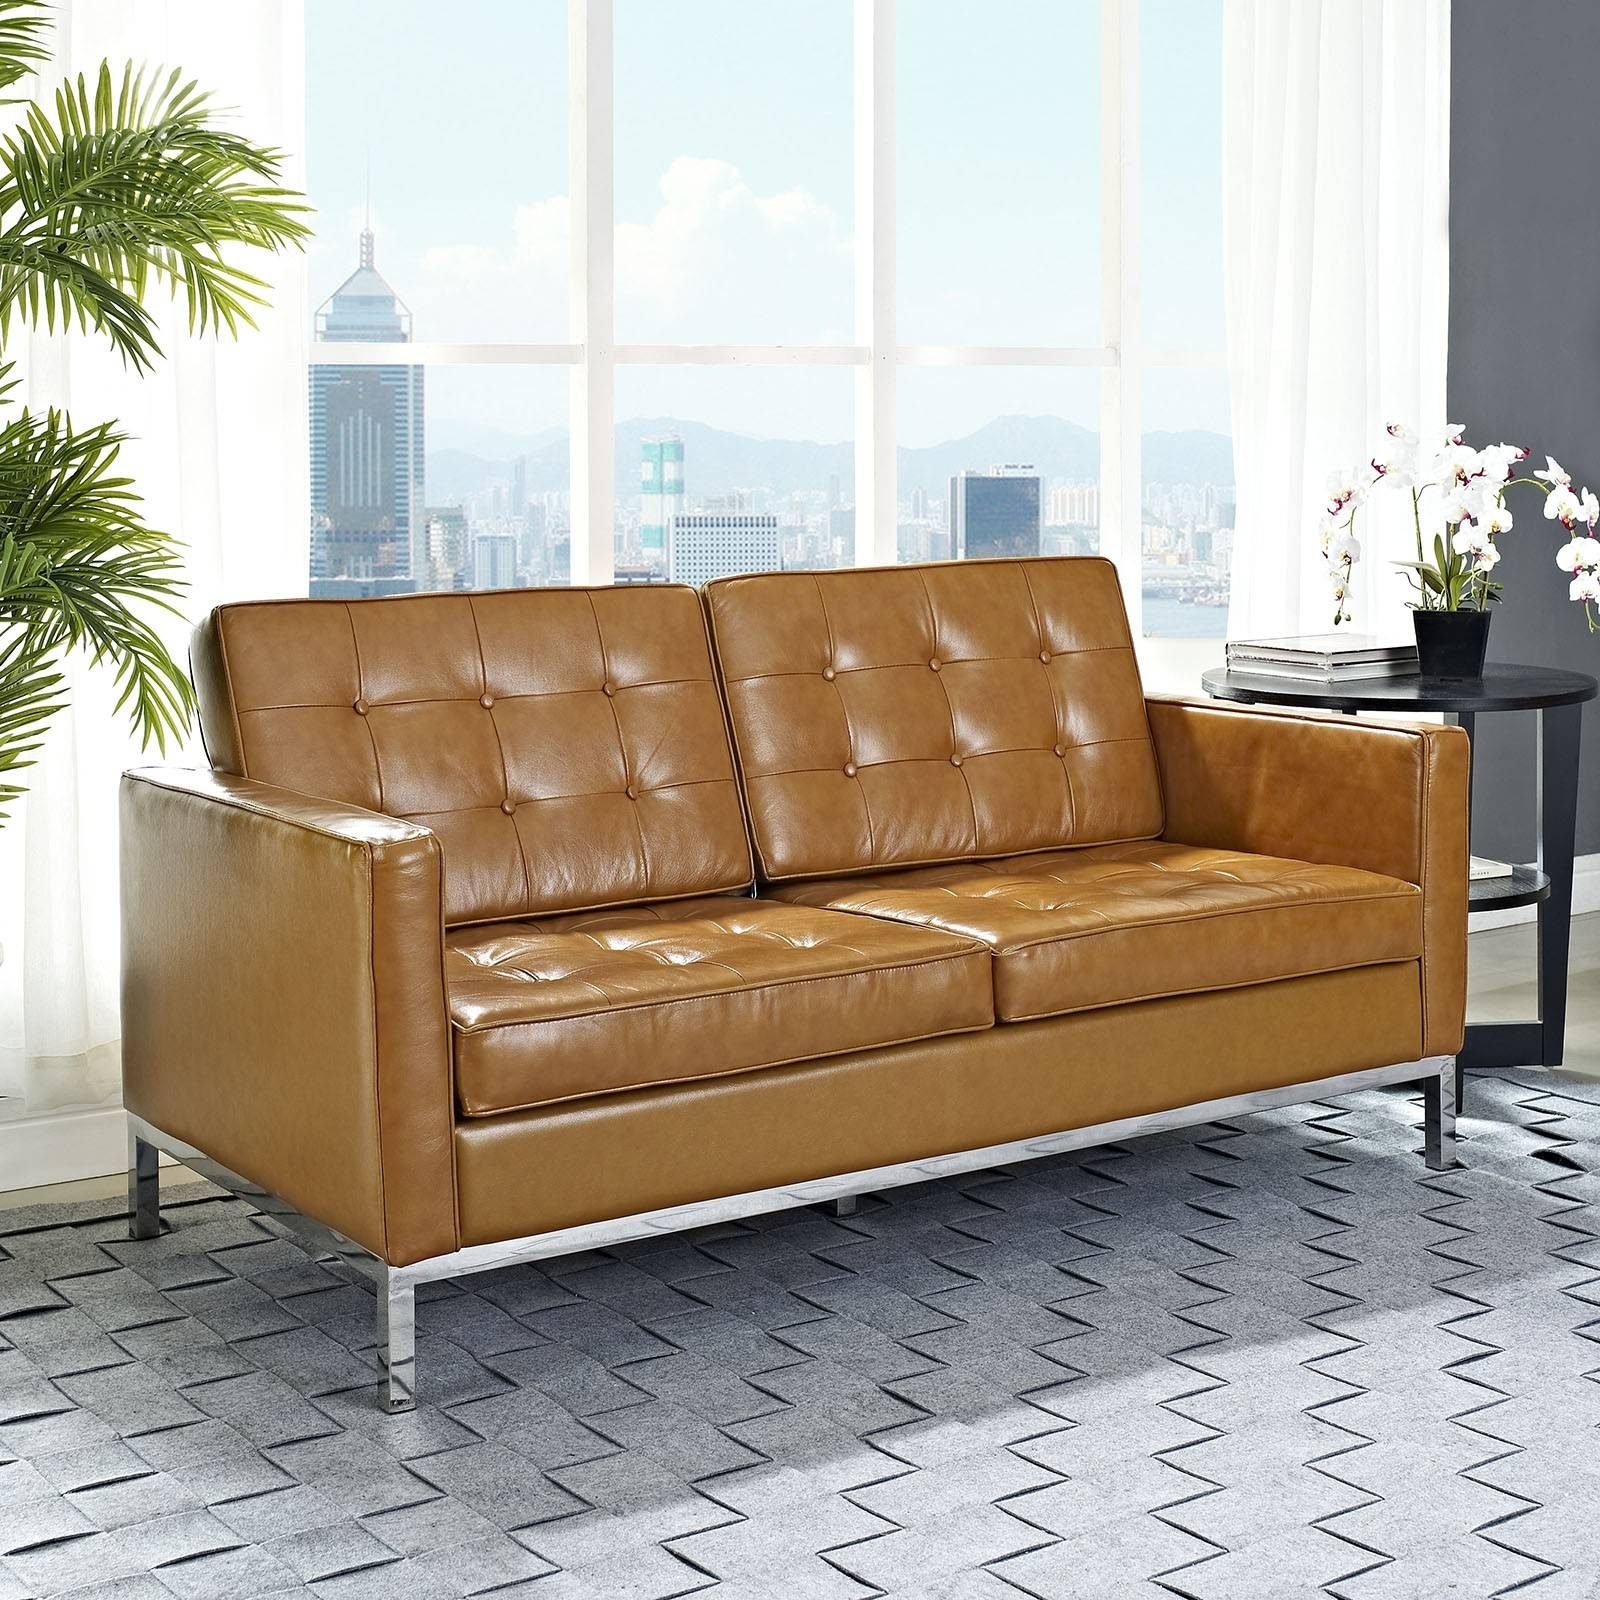 Knoll Leather Sofa - Leather Sectional Sofa inside Florence Knoll Leather Sofas (Image 17 of 25)